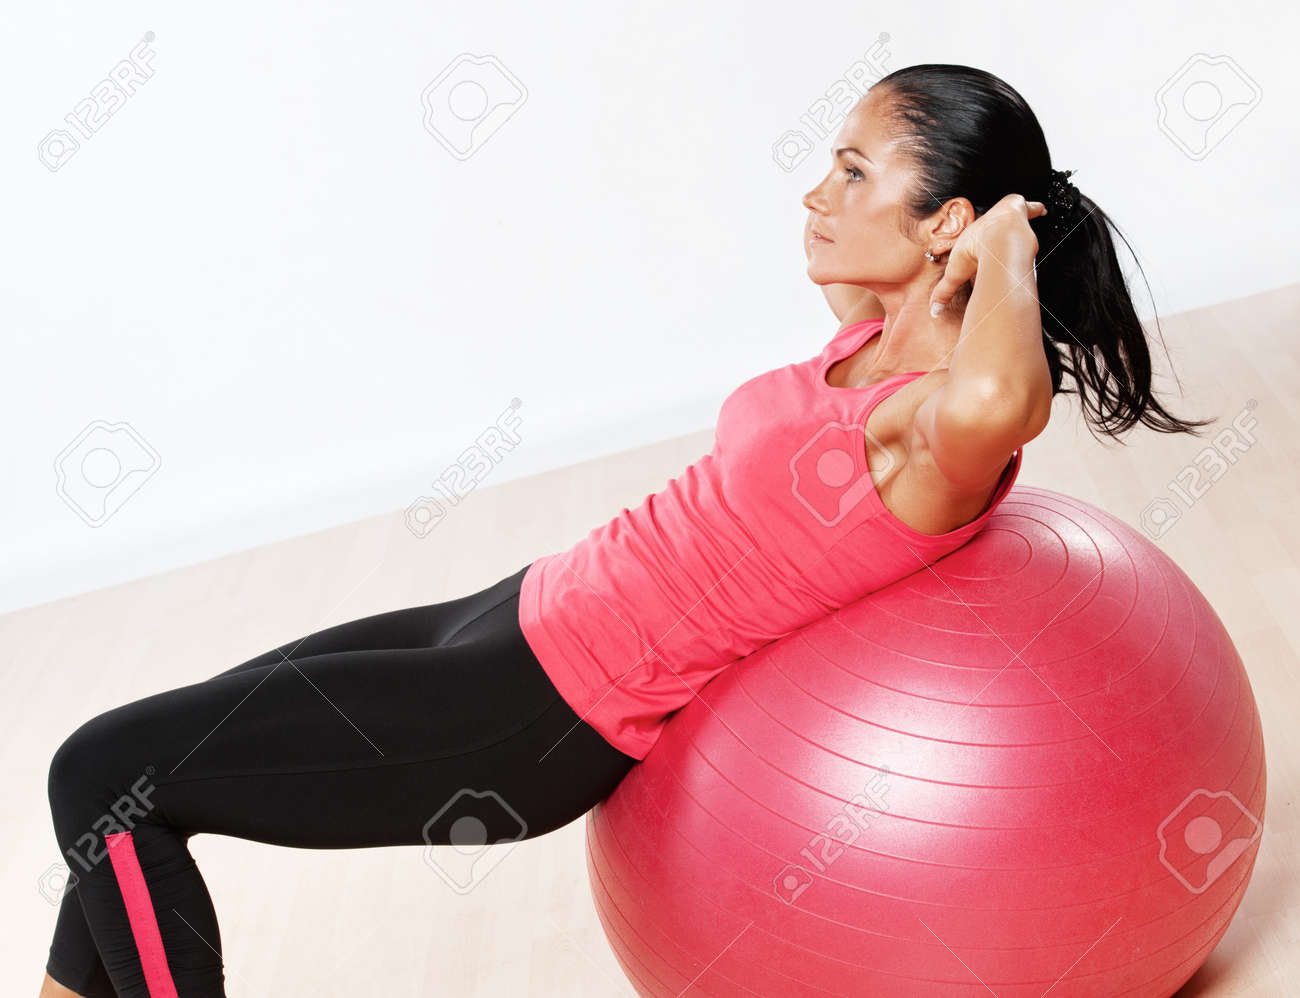 Beautiful athlete woman doing fitness exercise. Stock Photo - 10467413